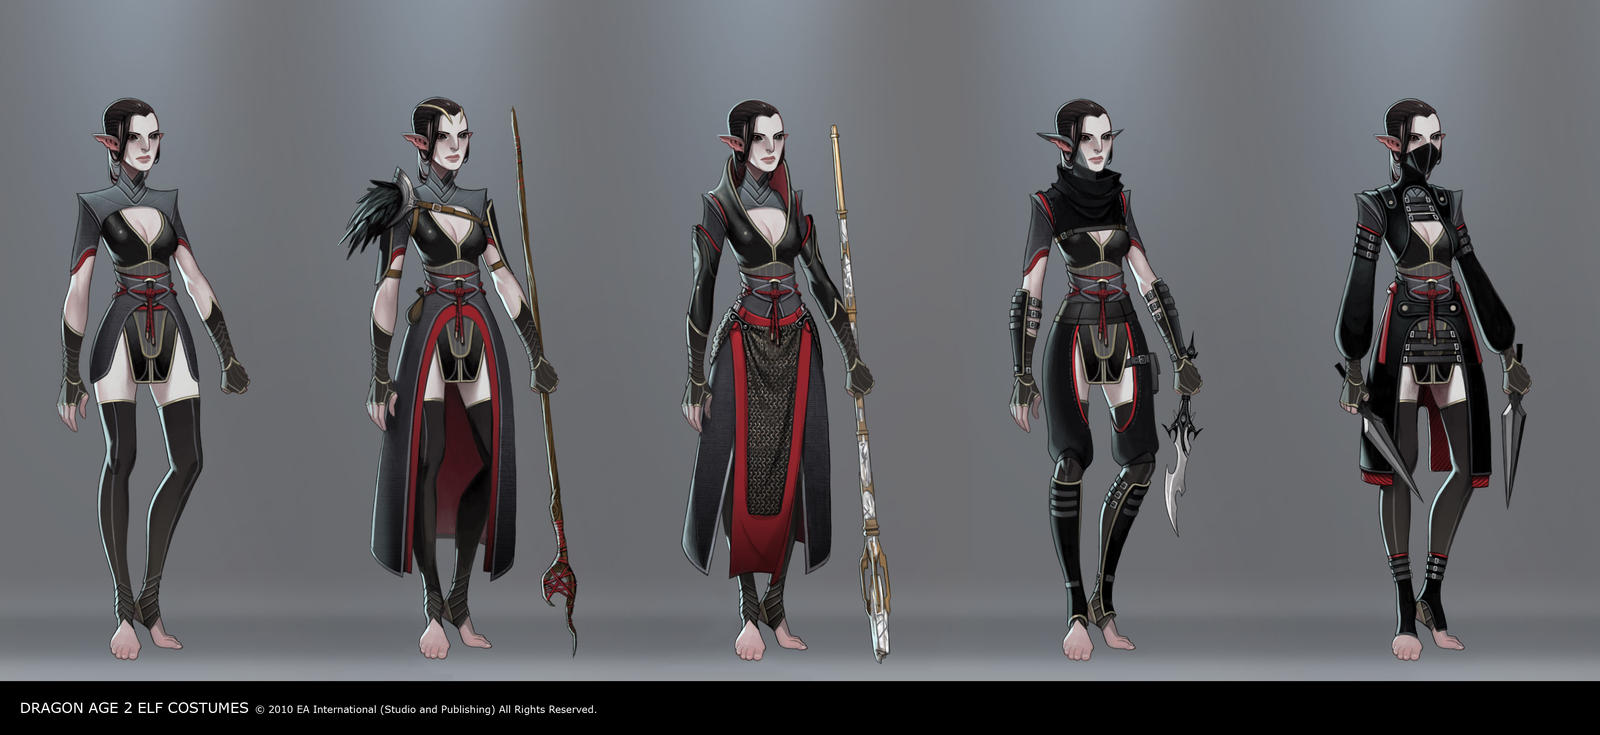 Dragon Age 2 Elf Costumes by joy-ang